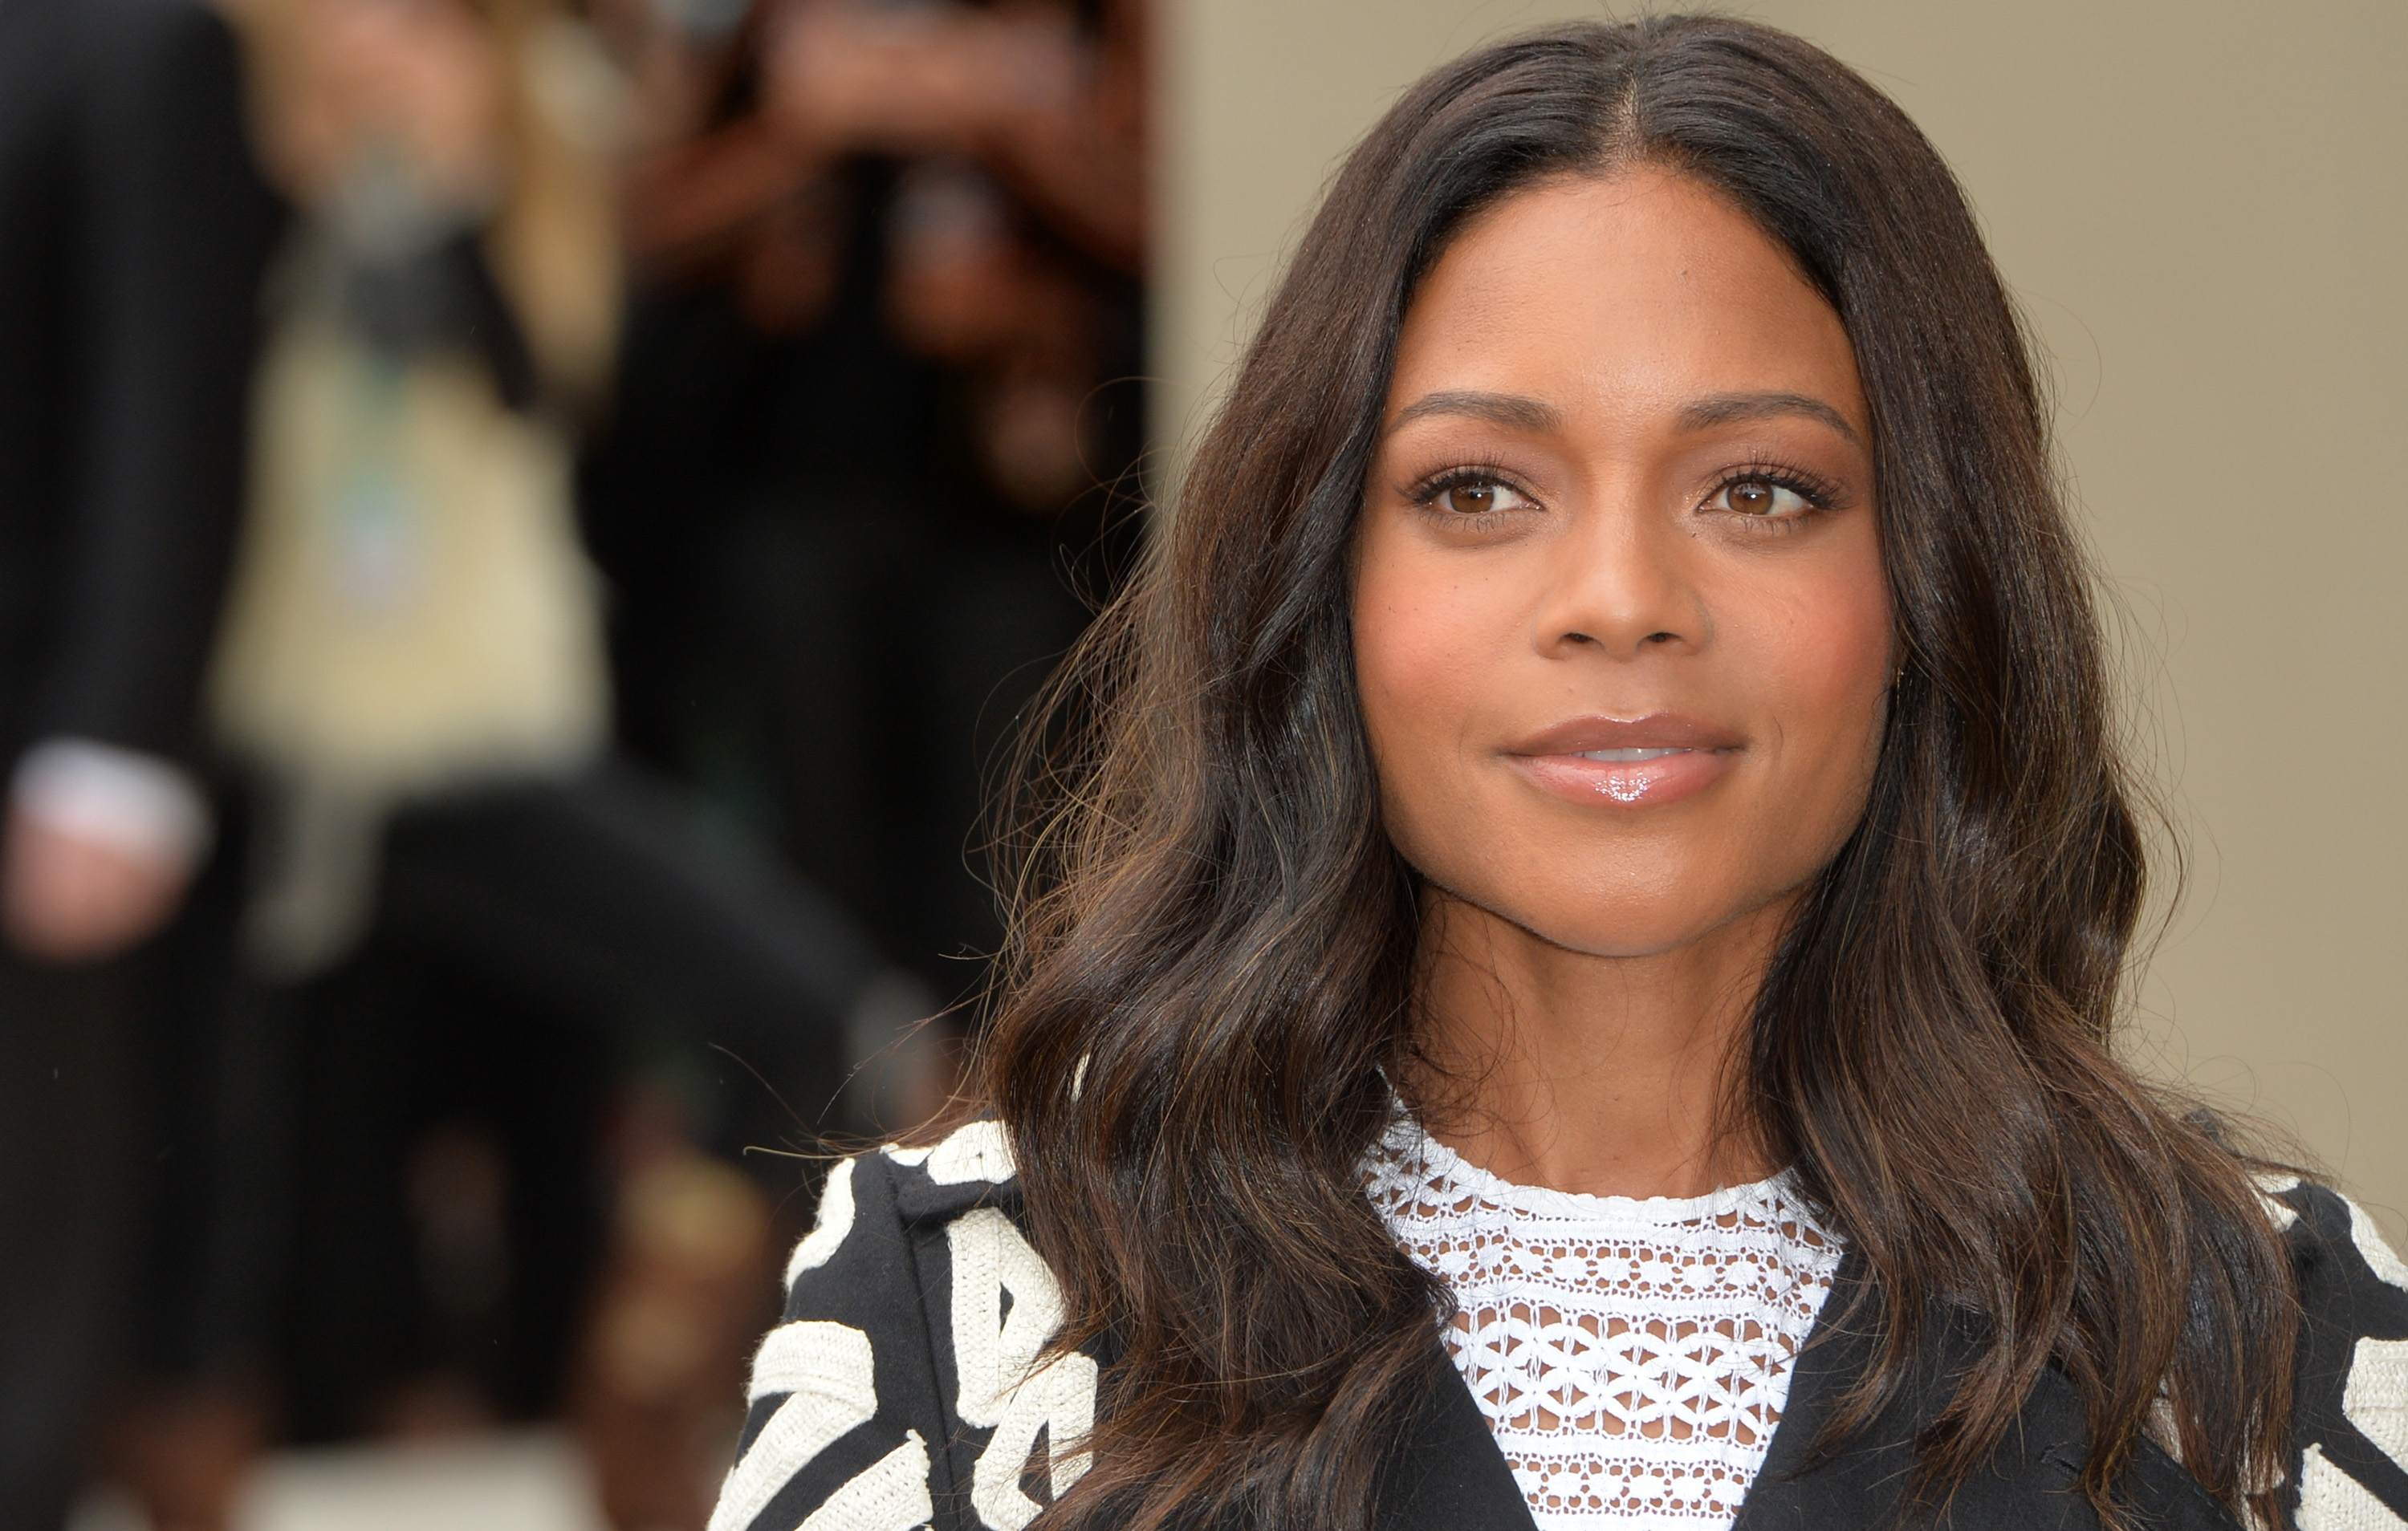 LONDON, ENGLAND - SEPTEMBER 21: Naomie Harris attends the Burberry Prorsum show during London Fashion Week Spring/Summer 2016/17 on September 21, 2015 in London, England. (Photo by Anthony Harvey/Getty Images)